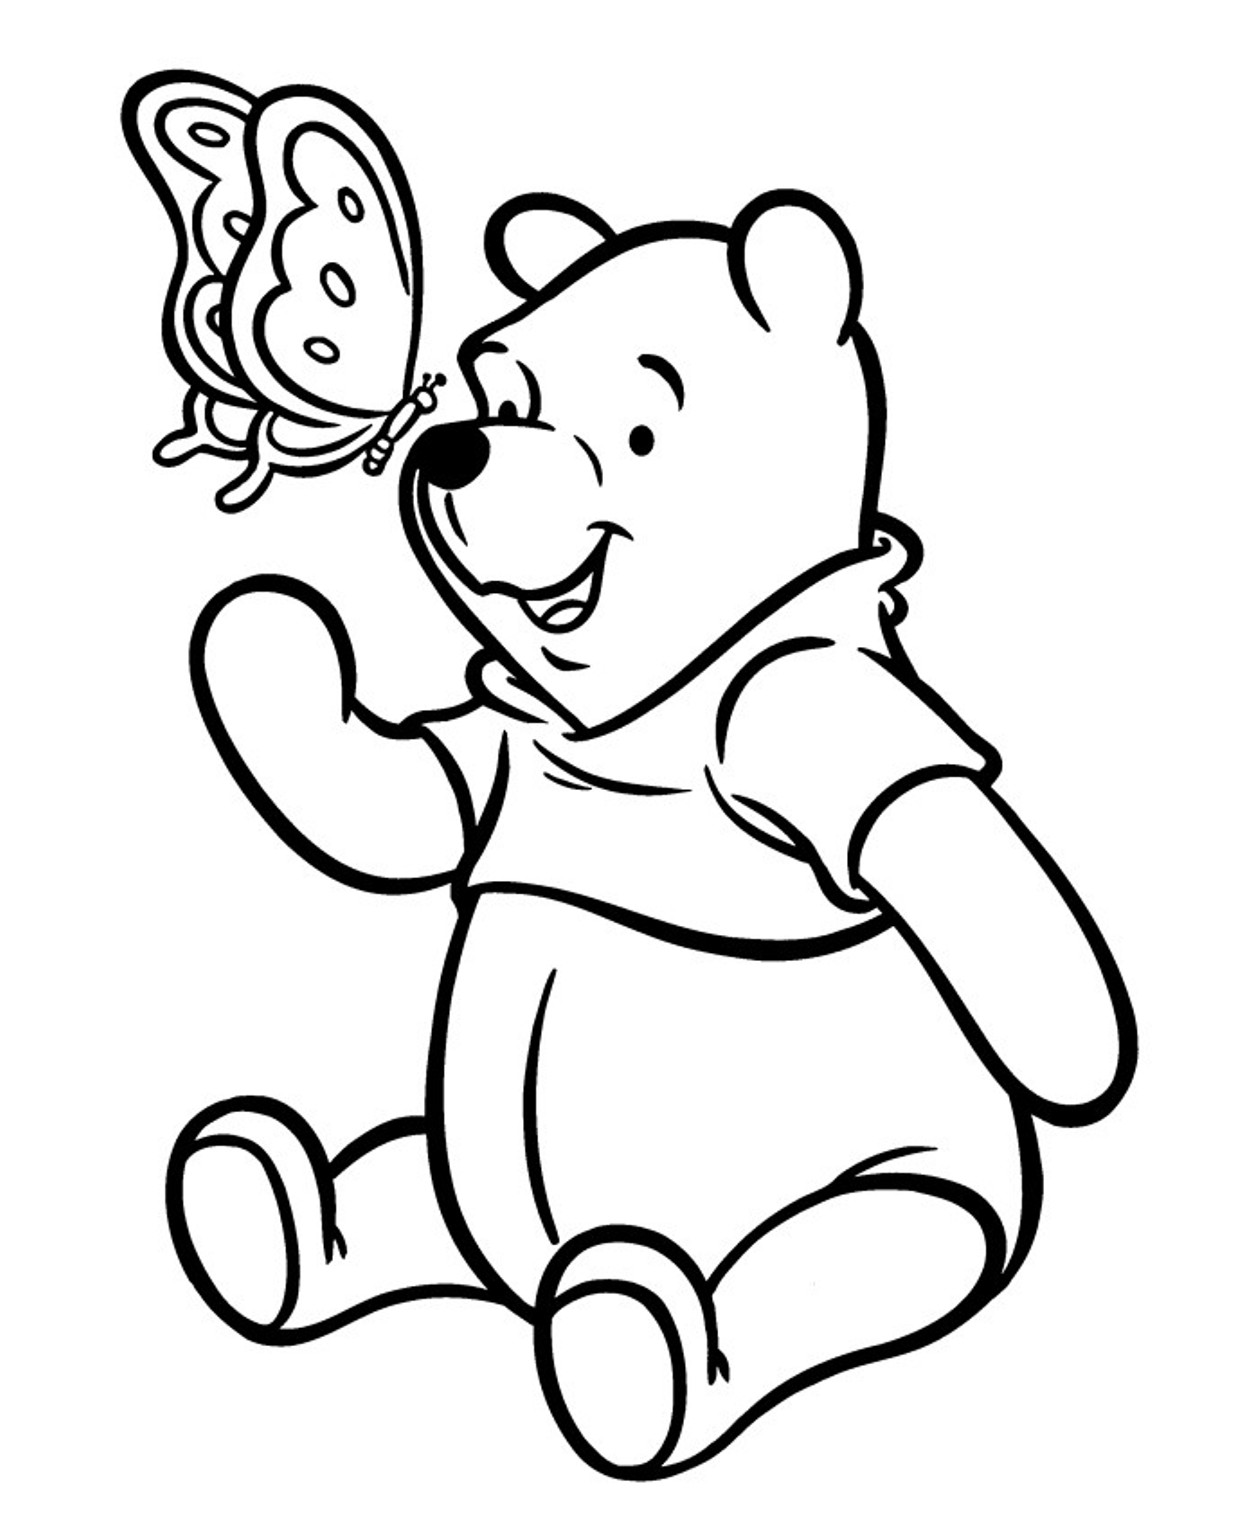 Baby Pooh Drawing at GetDrawings.com | Free for personal use Baby ...